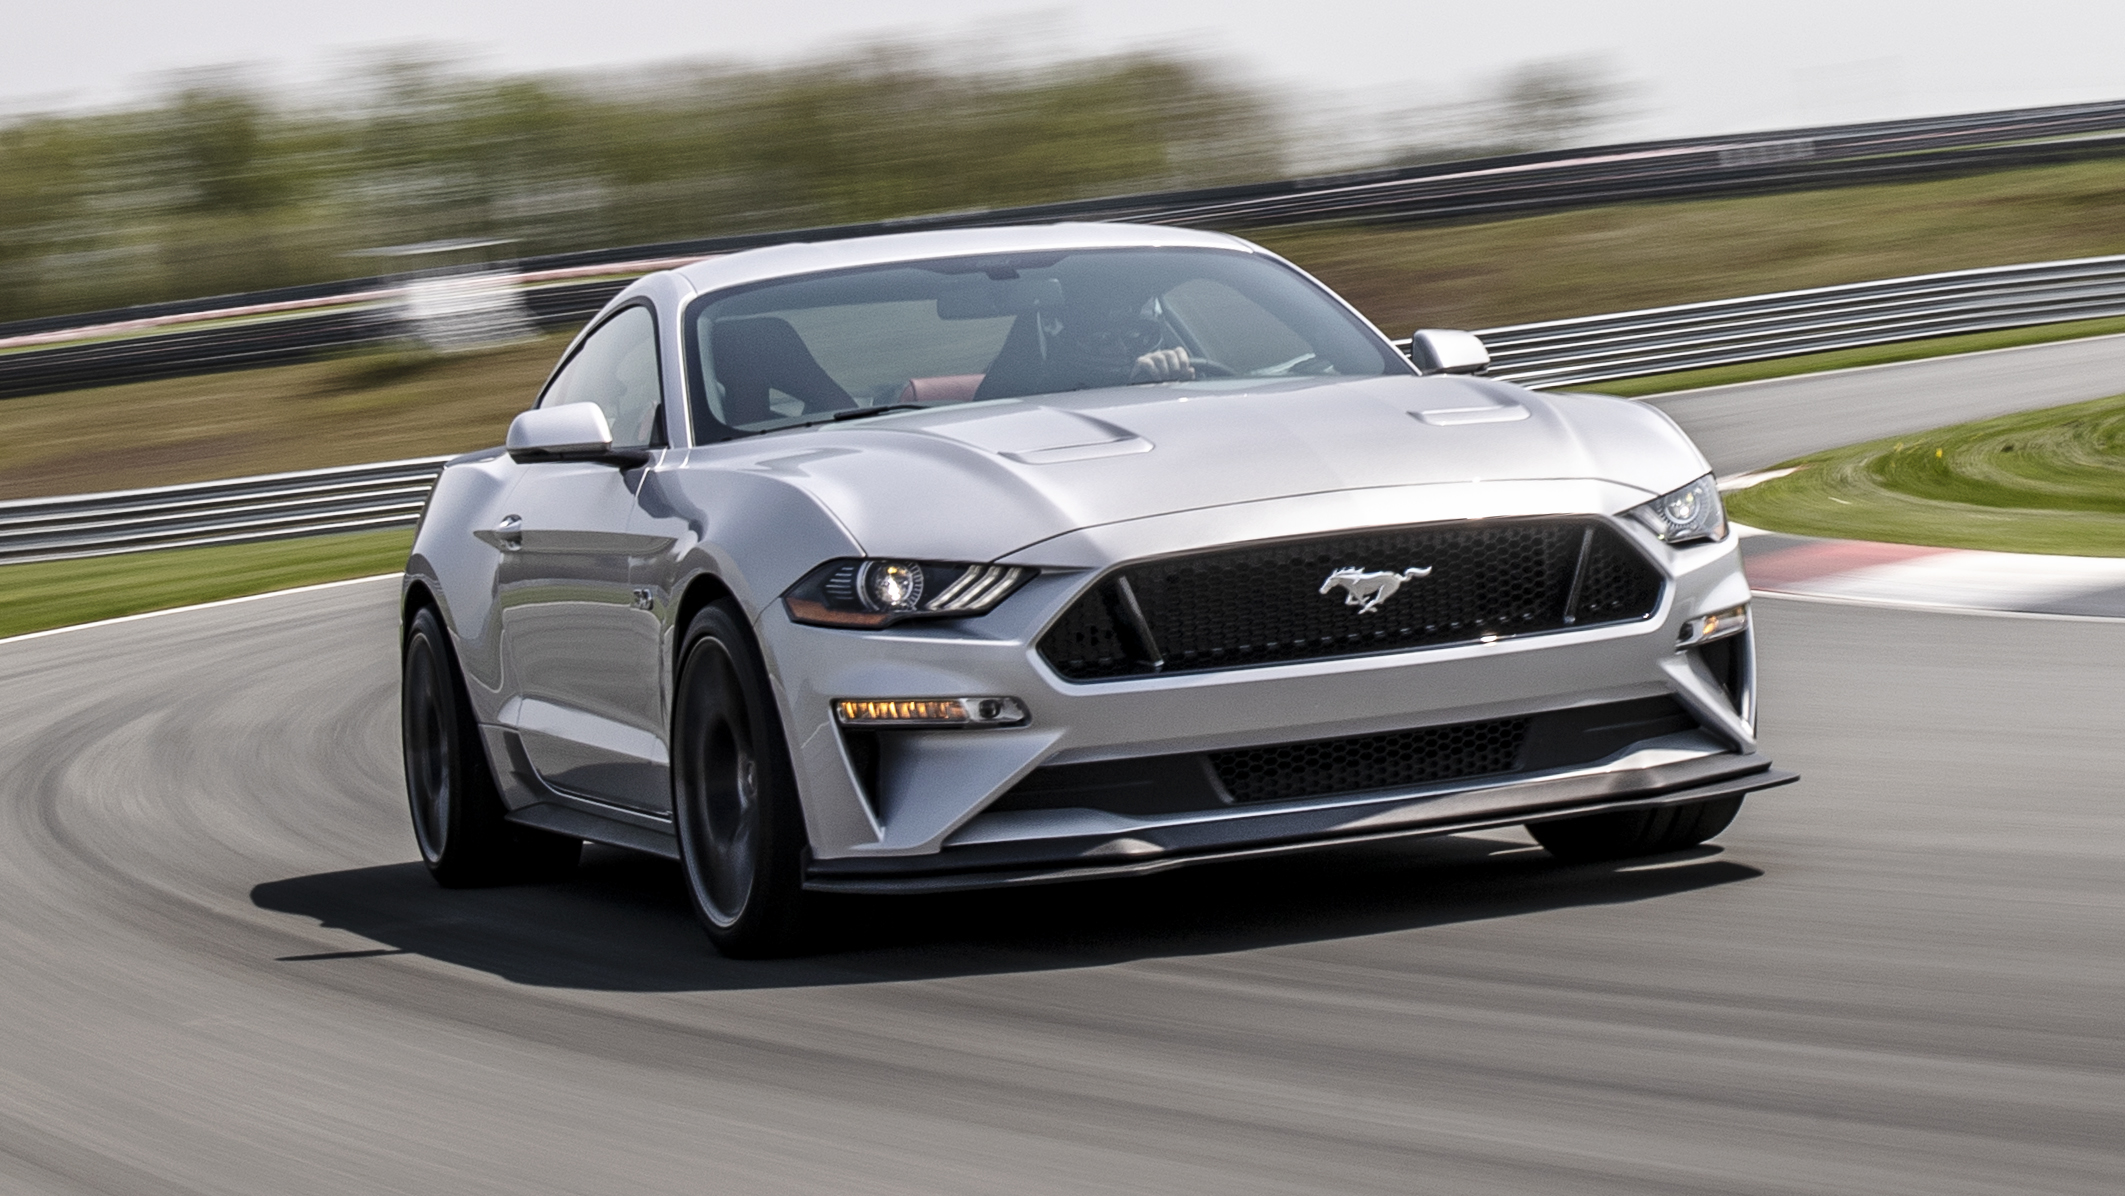 Mustang top gear ford mustang performance pack 2 review publicscrutiny Gallery